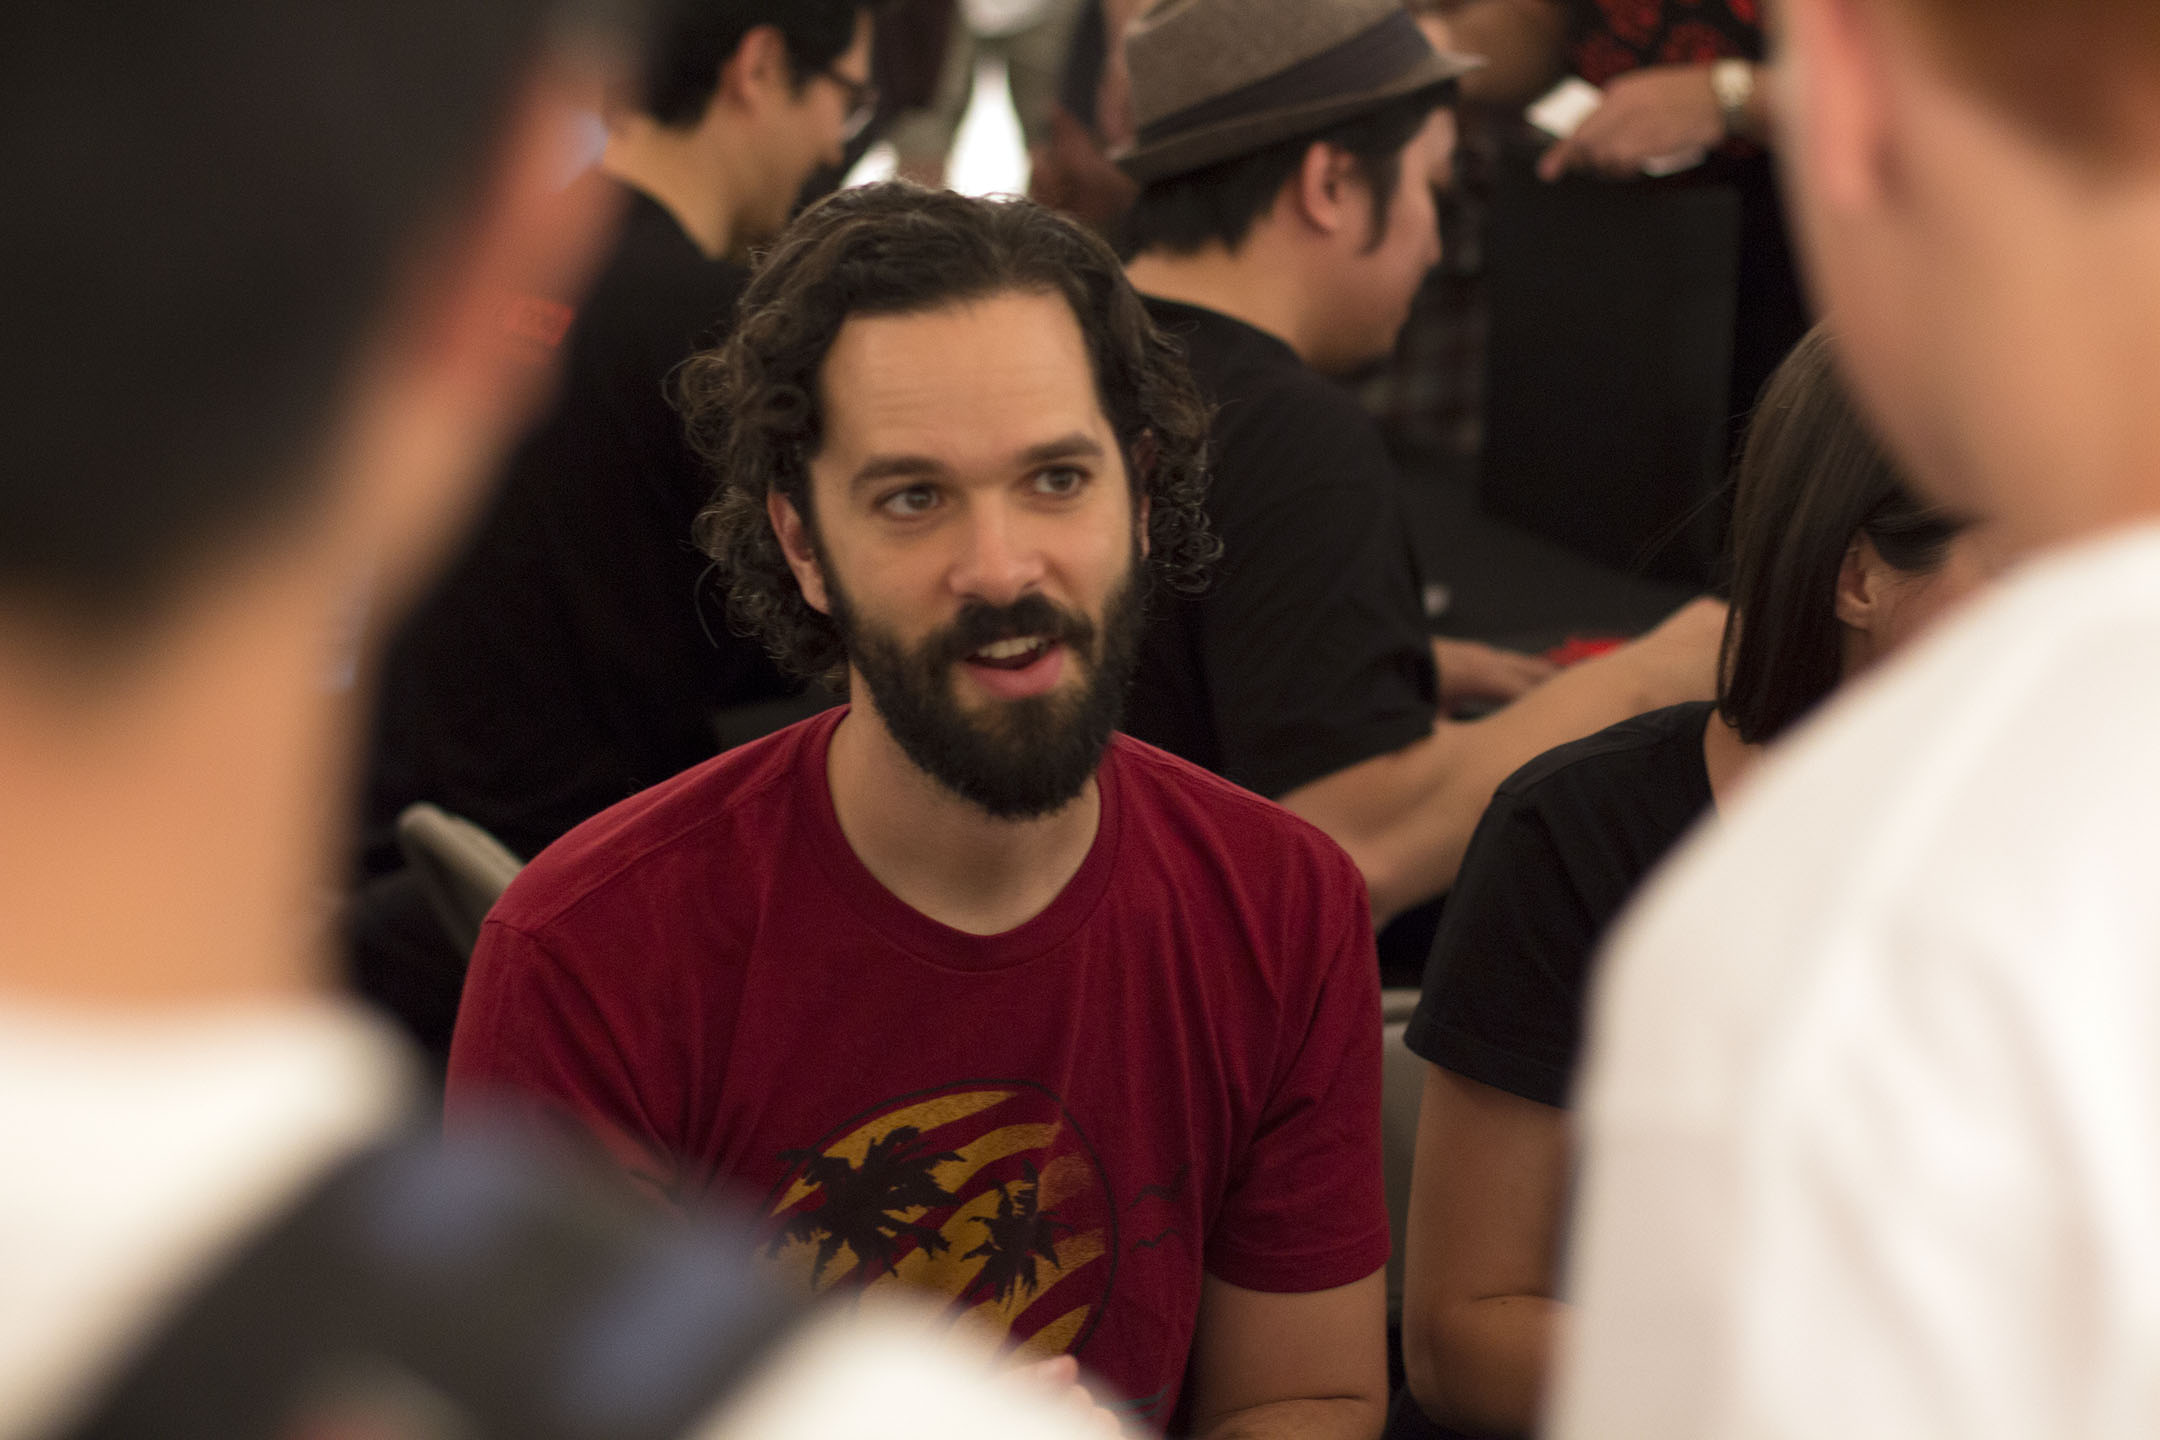 neil druckmann interviewneil druckmann wiki, neil druckmann wife, neil druckmann logan, neil druckmann half life, neil druckmann and bruce straley, neil druckmann interview, neil druckmann reddit, neil druckmann net worth, neil druckmann israel, neil druckmann politics, neil druckmann zelda, neil druckmann feminist, neil druckmann game of thrones, neil druckmann twitter, neil druckmann instagram, neil druckmann biography, neil druckmann height, neil druckmann facebook, neil druckmann anita sarkeesian, neil druckmann last of us